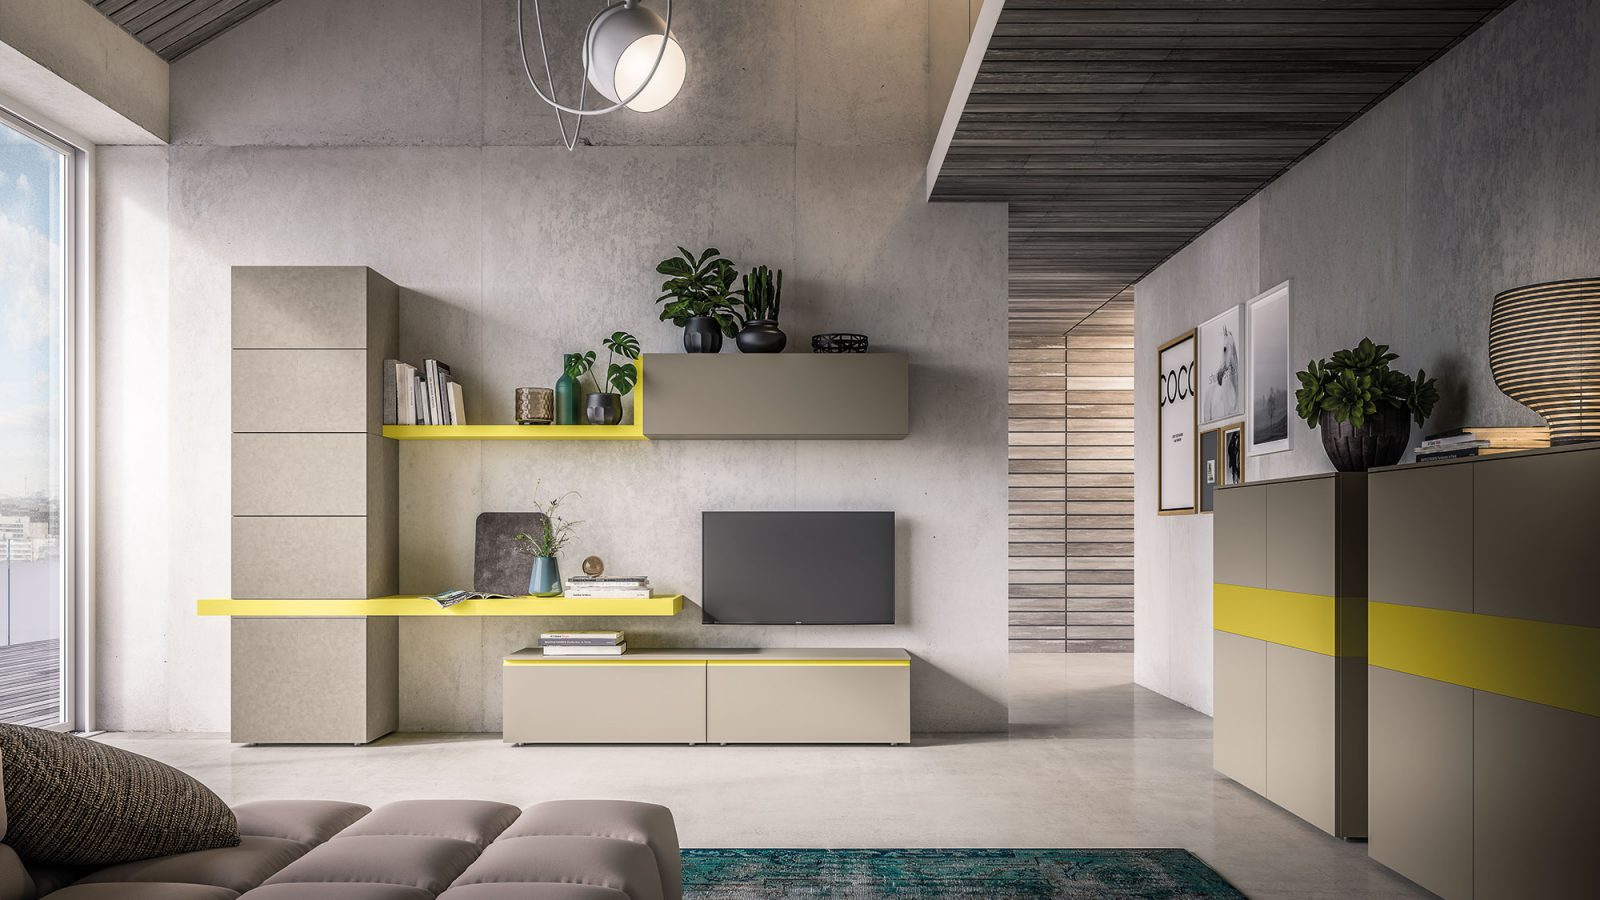 Arredamento Design Low Cost.Design Furniture For The Living Room And Bedroom Spaces Orme